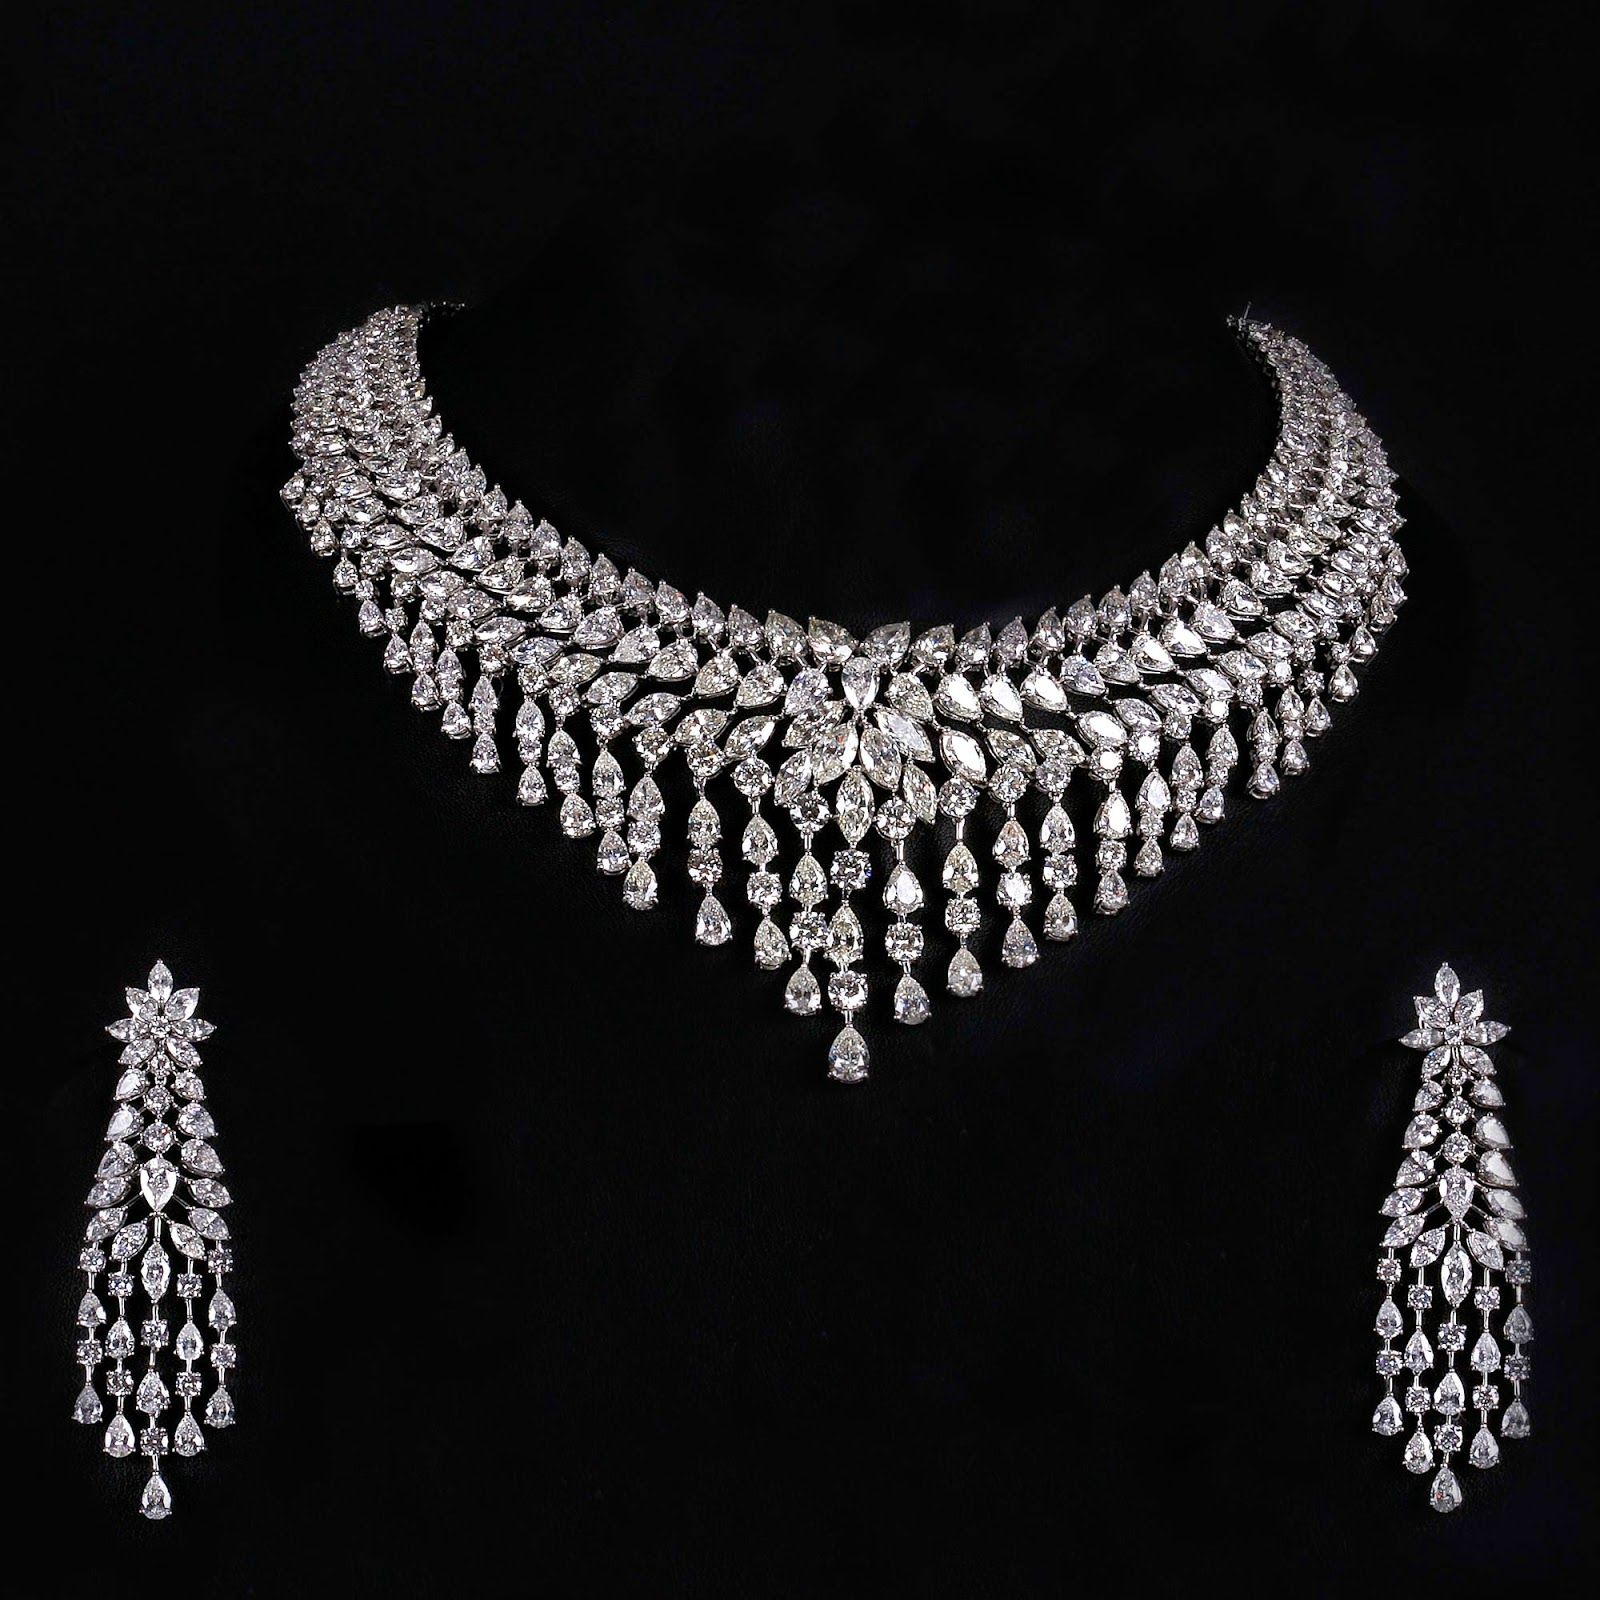 Indian Bridal Diamond Jewellery Schmuck Pinterest